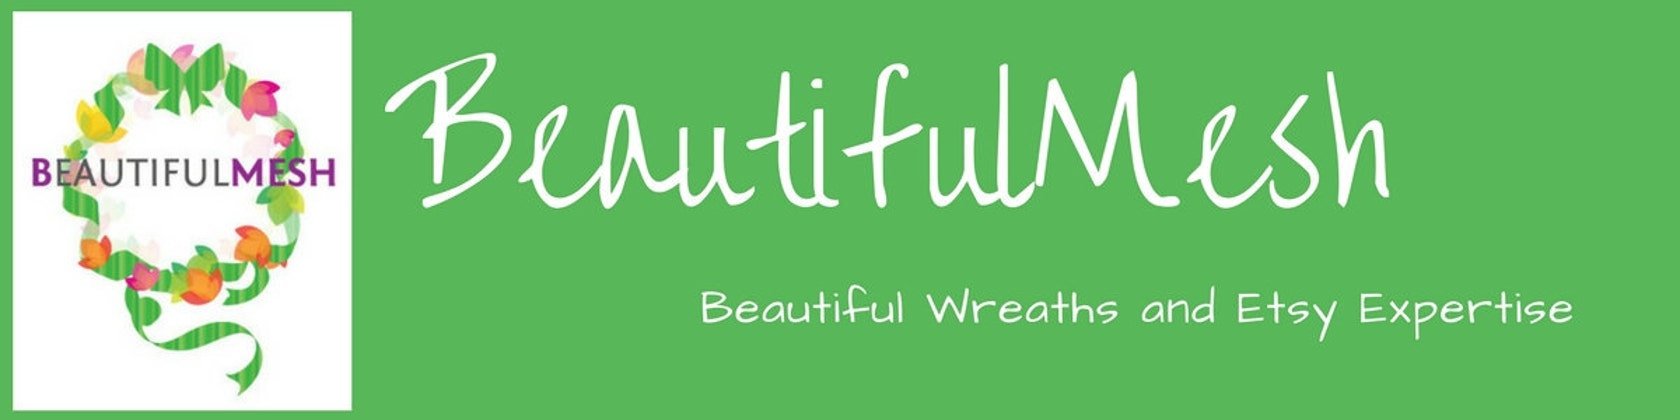 Beautiful wreaths and etsy expertise by beautifulmesh on etsy fandeluxe